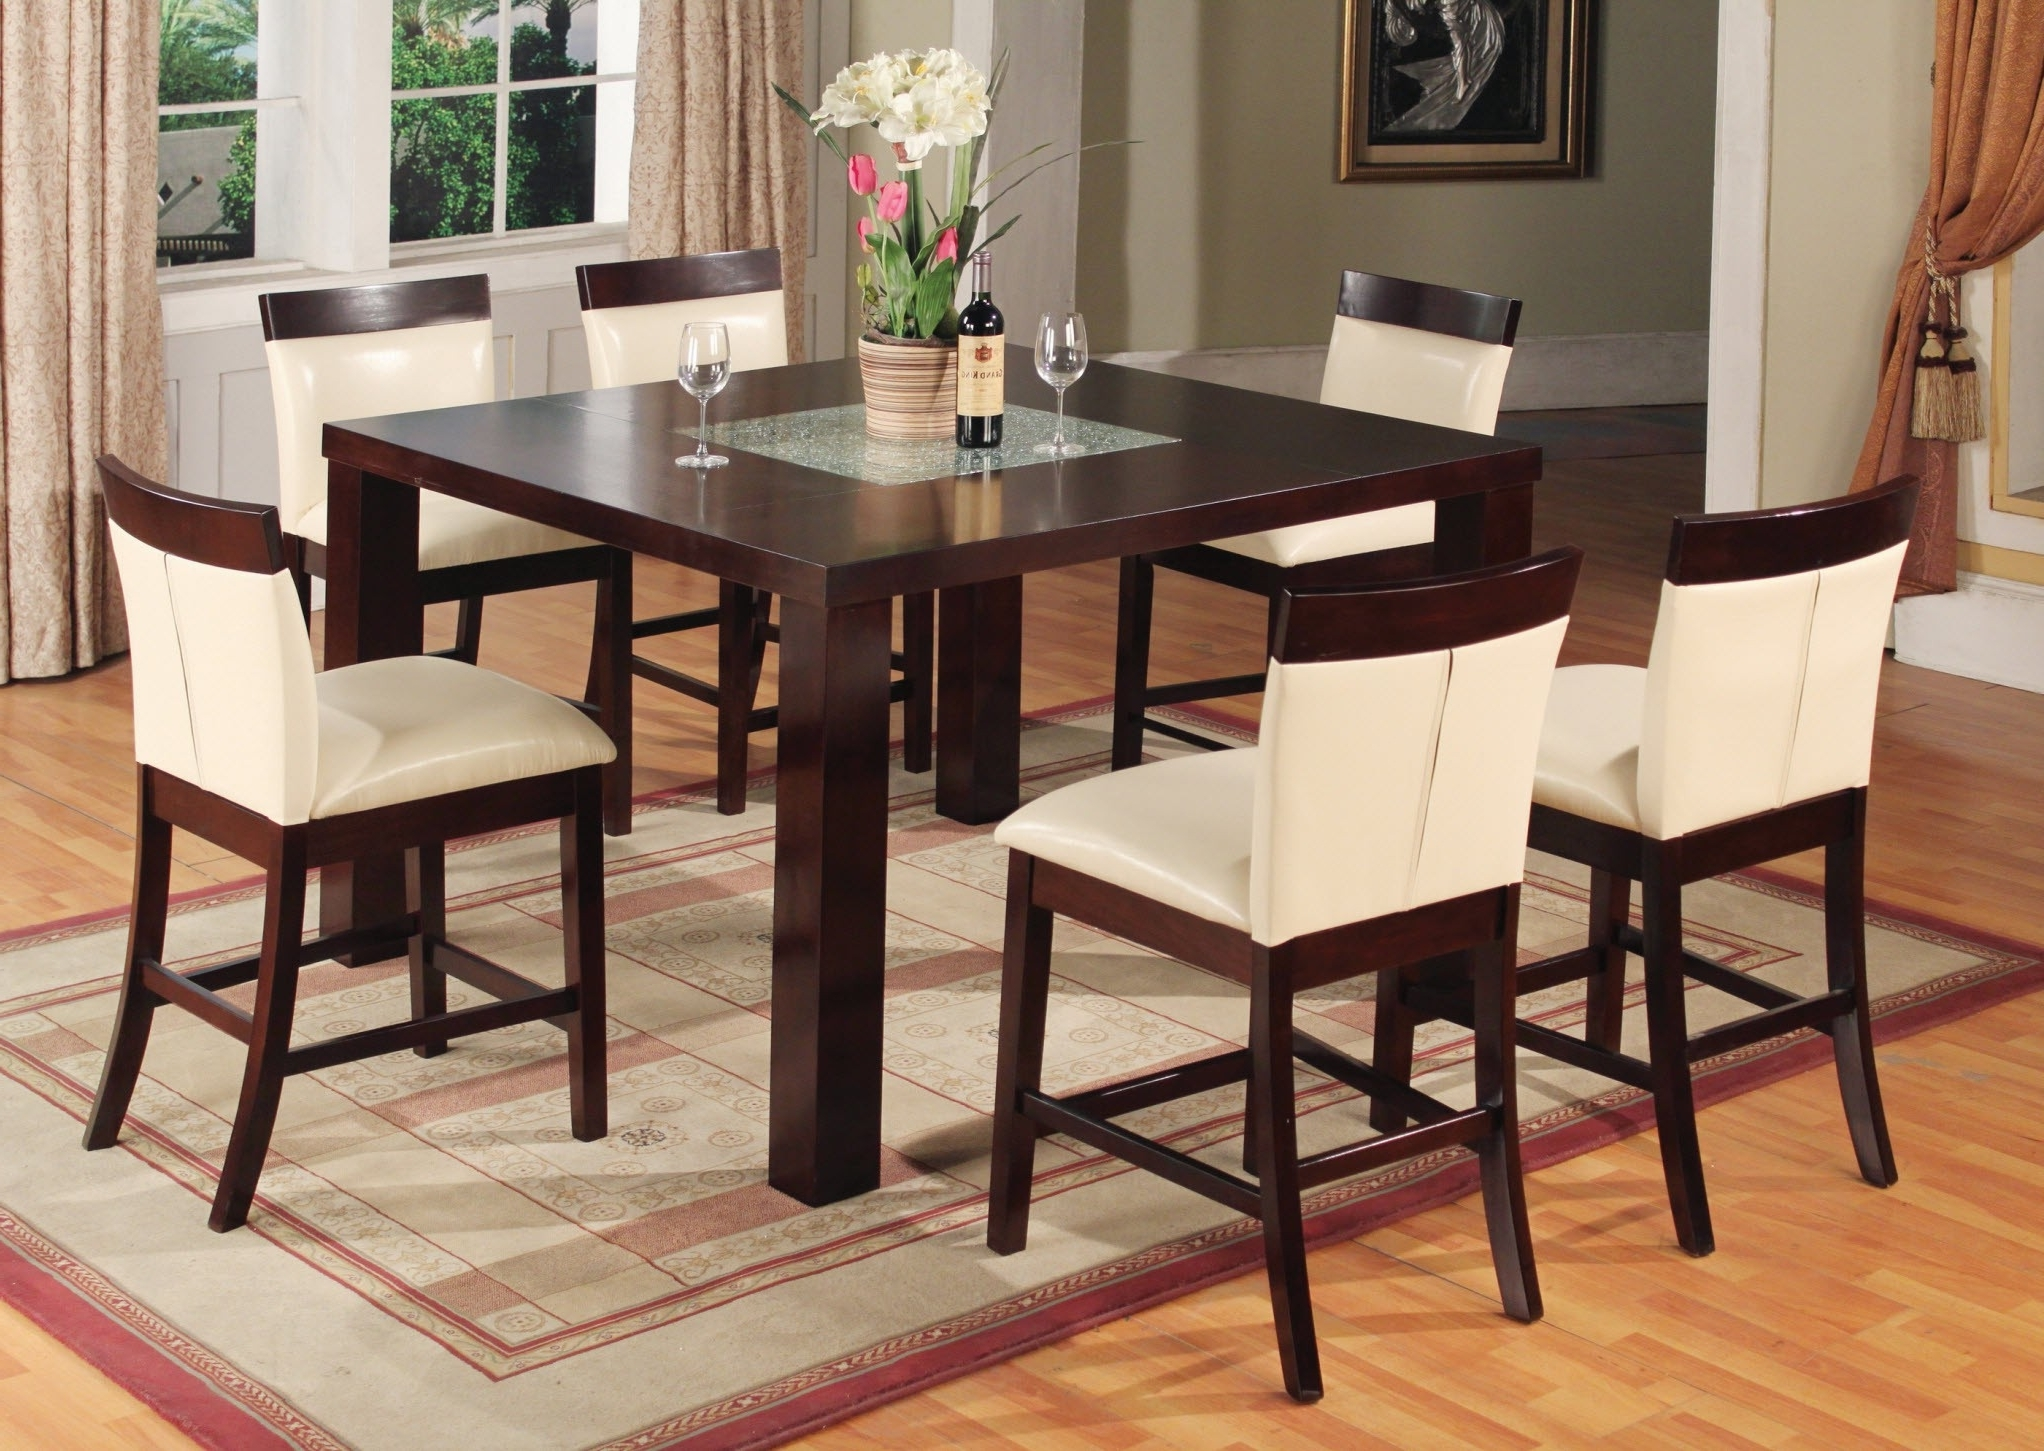 Most Recently Released Jaxon 6 Piece Rectangle Dining Sets With Bench & Uph Chairs For Countertop Dining Room Tables – Dining Room Design (View 25 of 25)